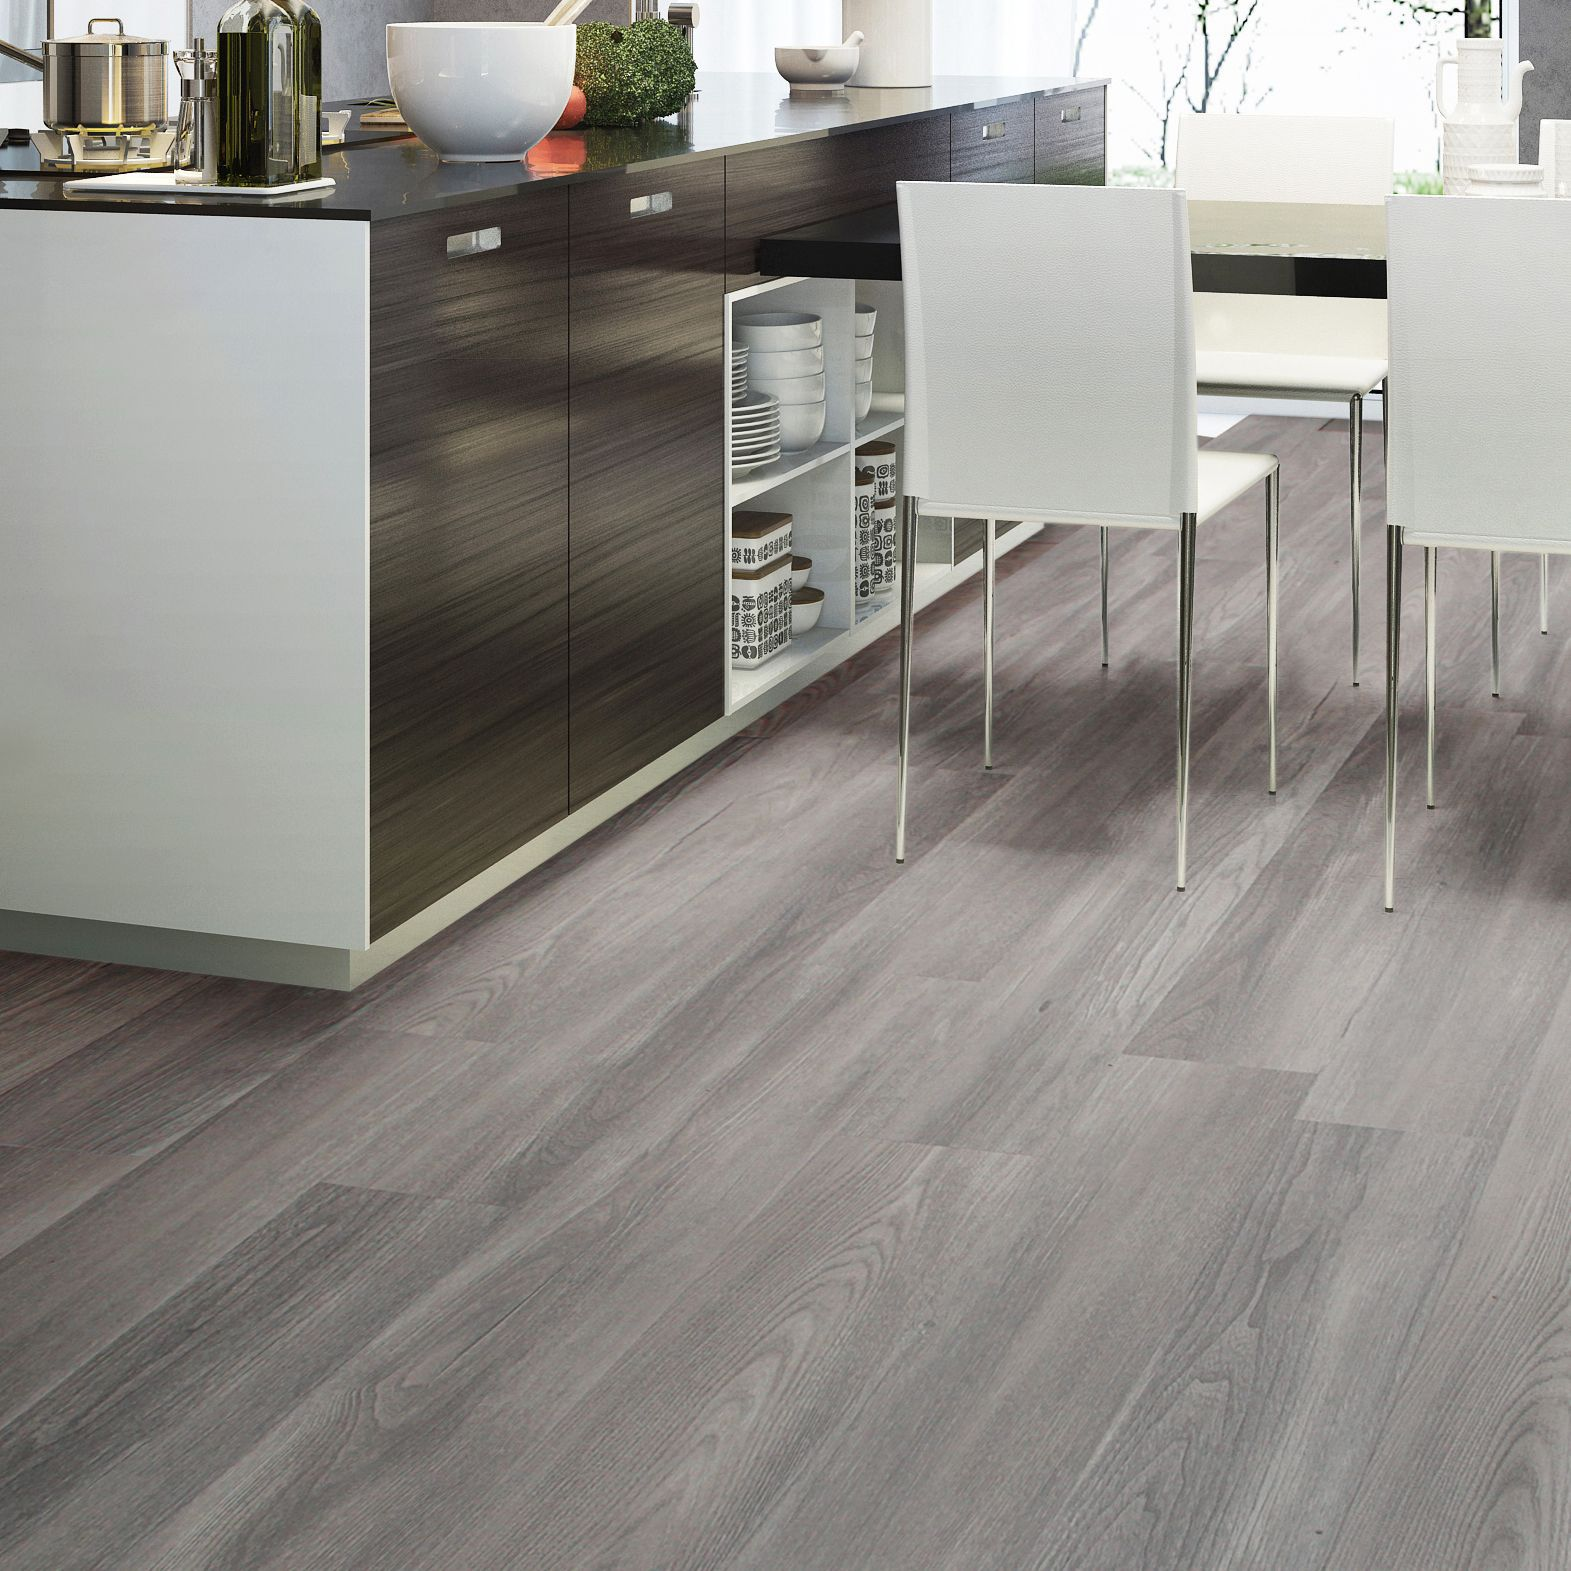 Grey Natural Oak Effect Waterproof Luxury Vinyl Click